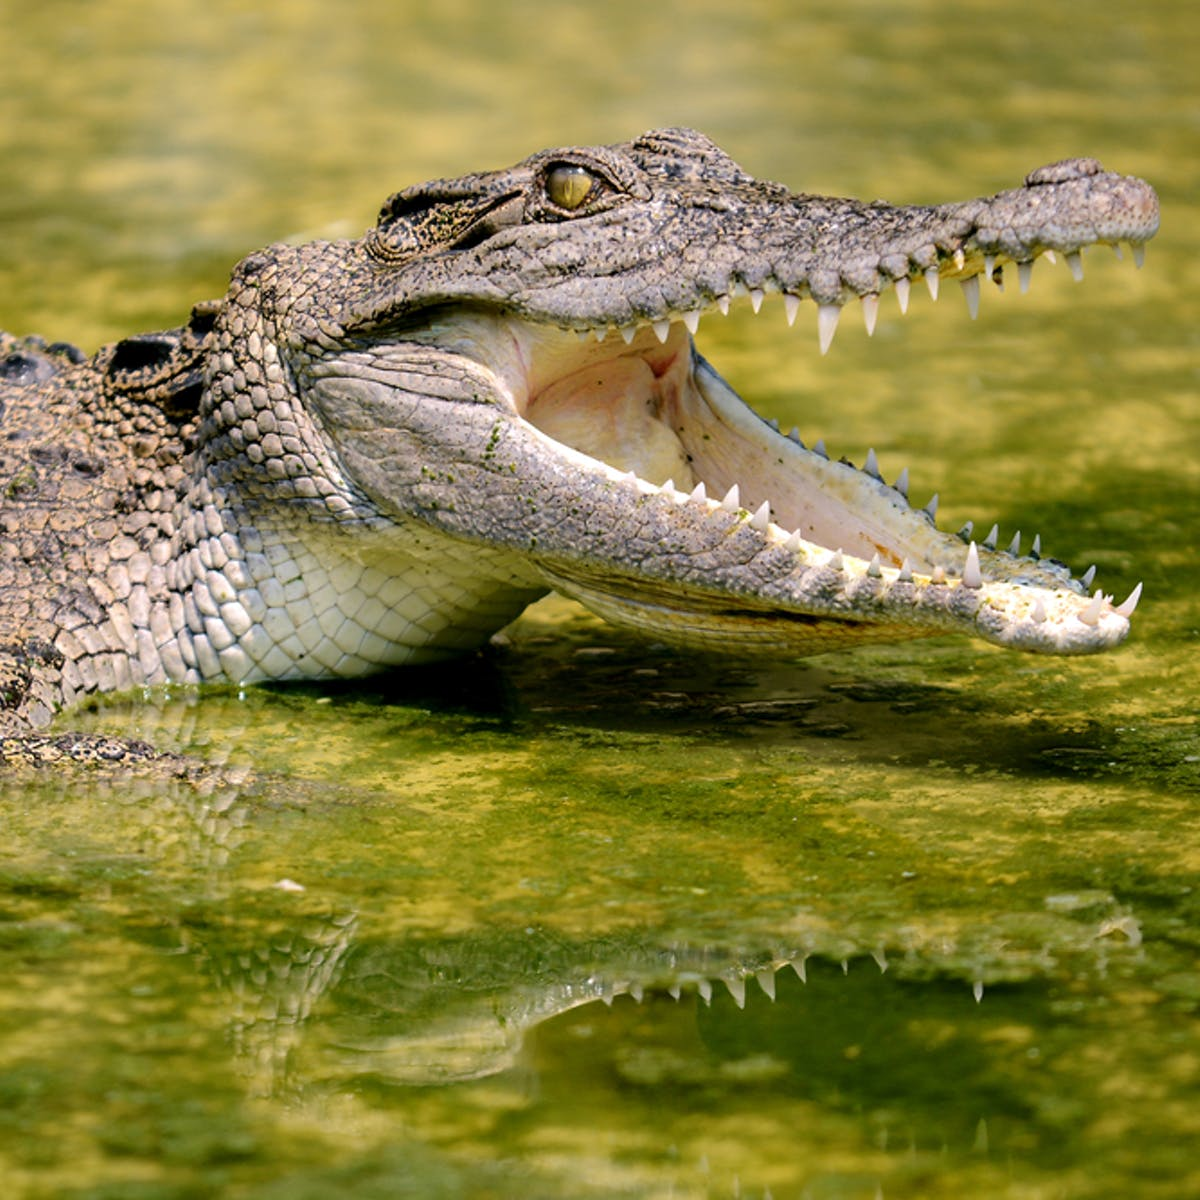 If a croc bite doesn't get you, infection will